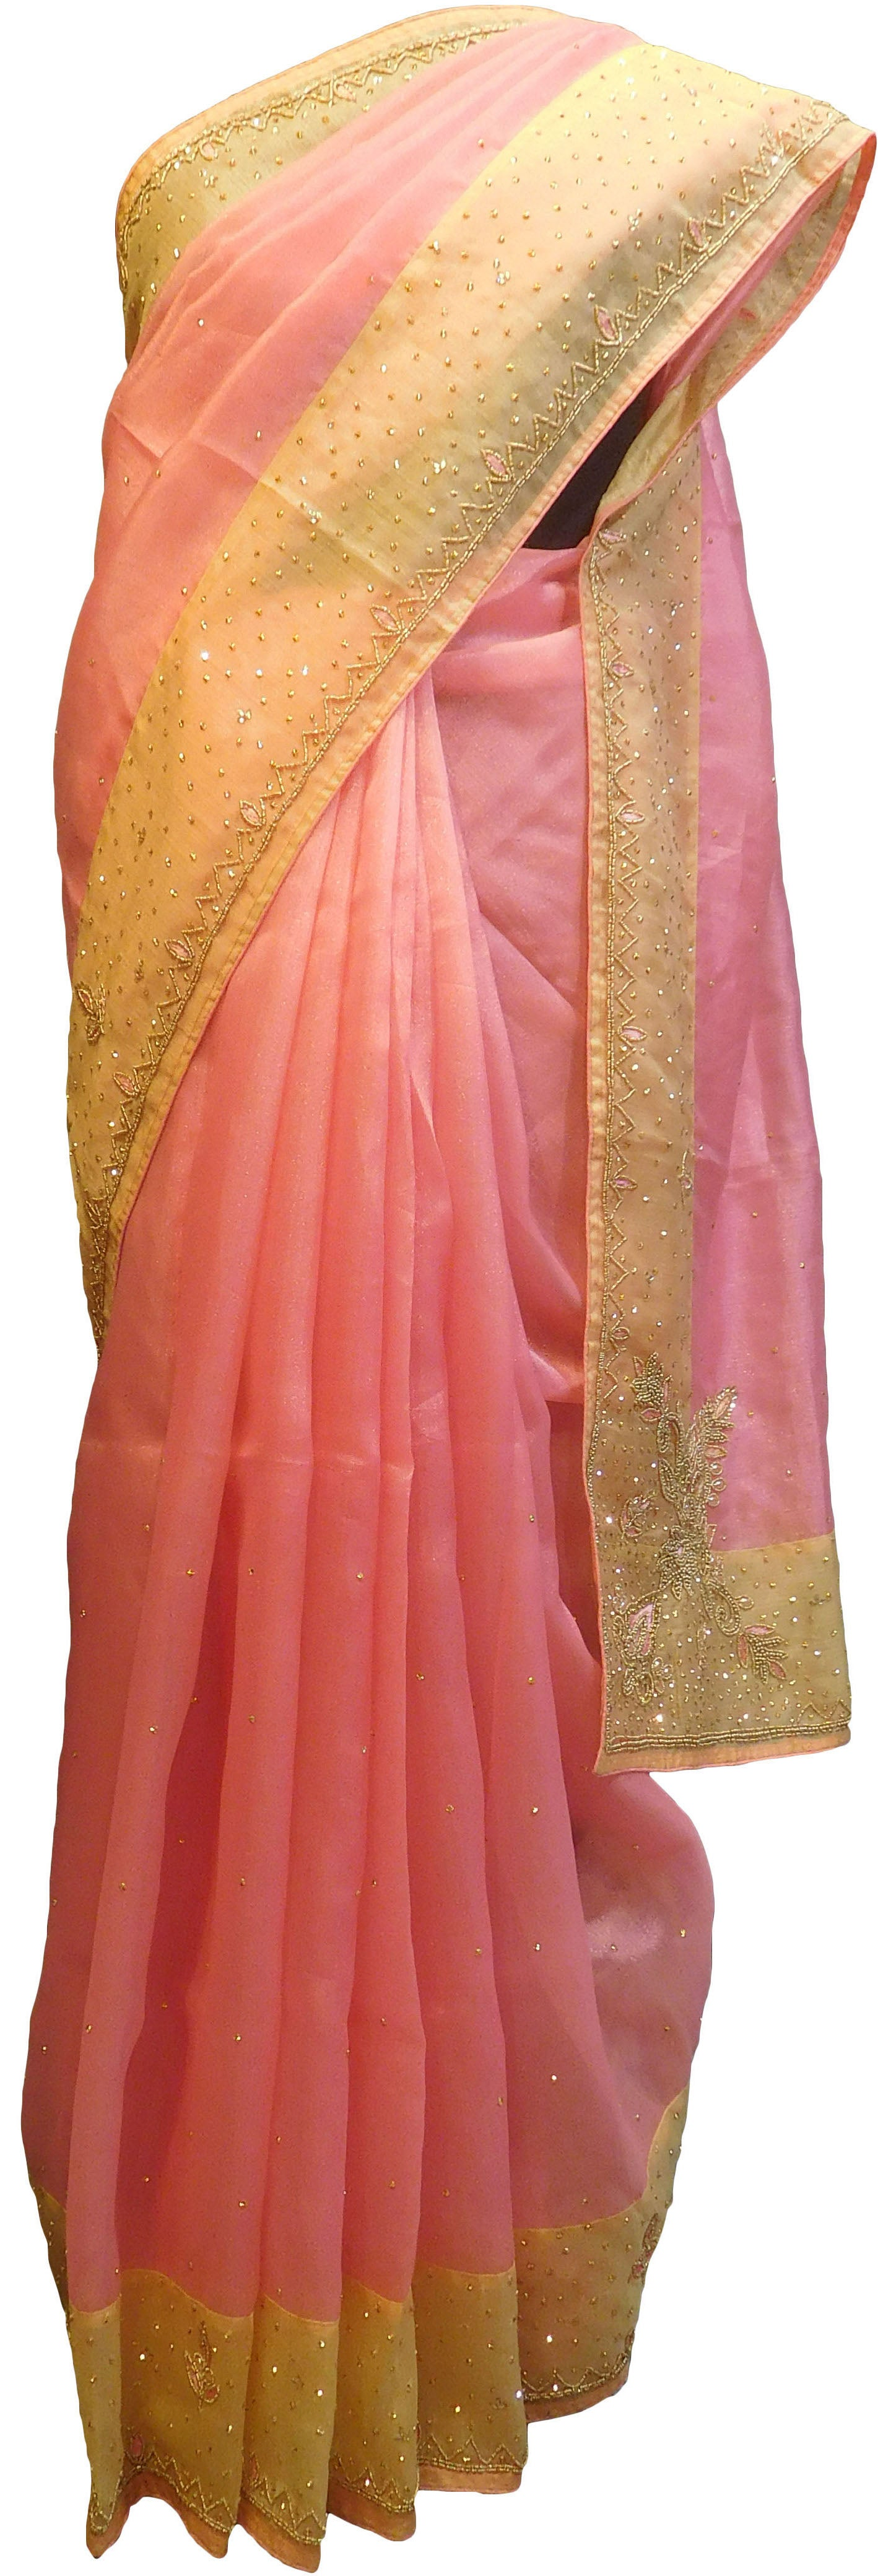 SMSAREE Pink & Yellow Designer Wedding Partywear Organza Stone Thread & Beads Hand Embroidery Work Bridal Saree Sari With Blouse Piece F100